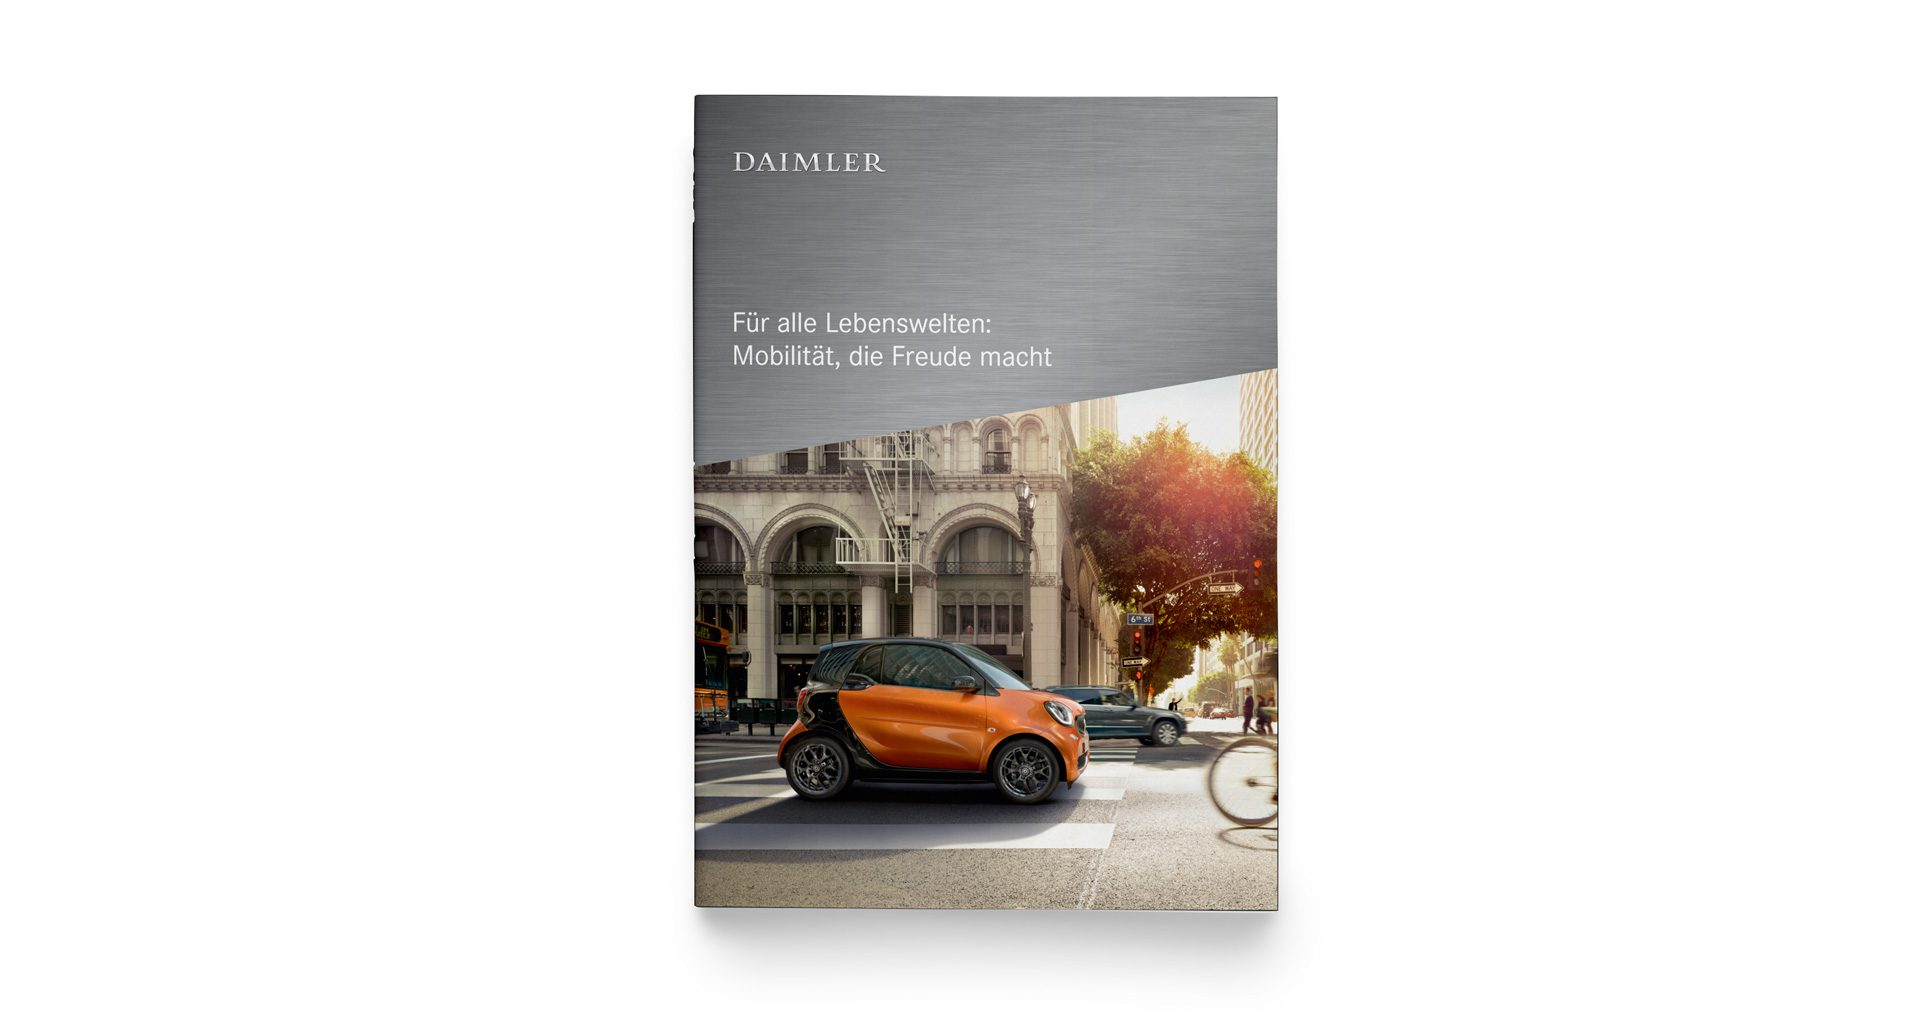 Daimler Corporate Design Cover